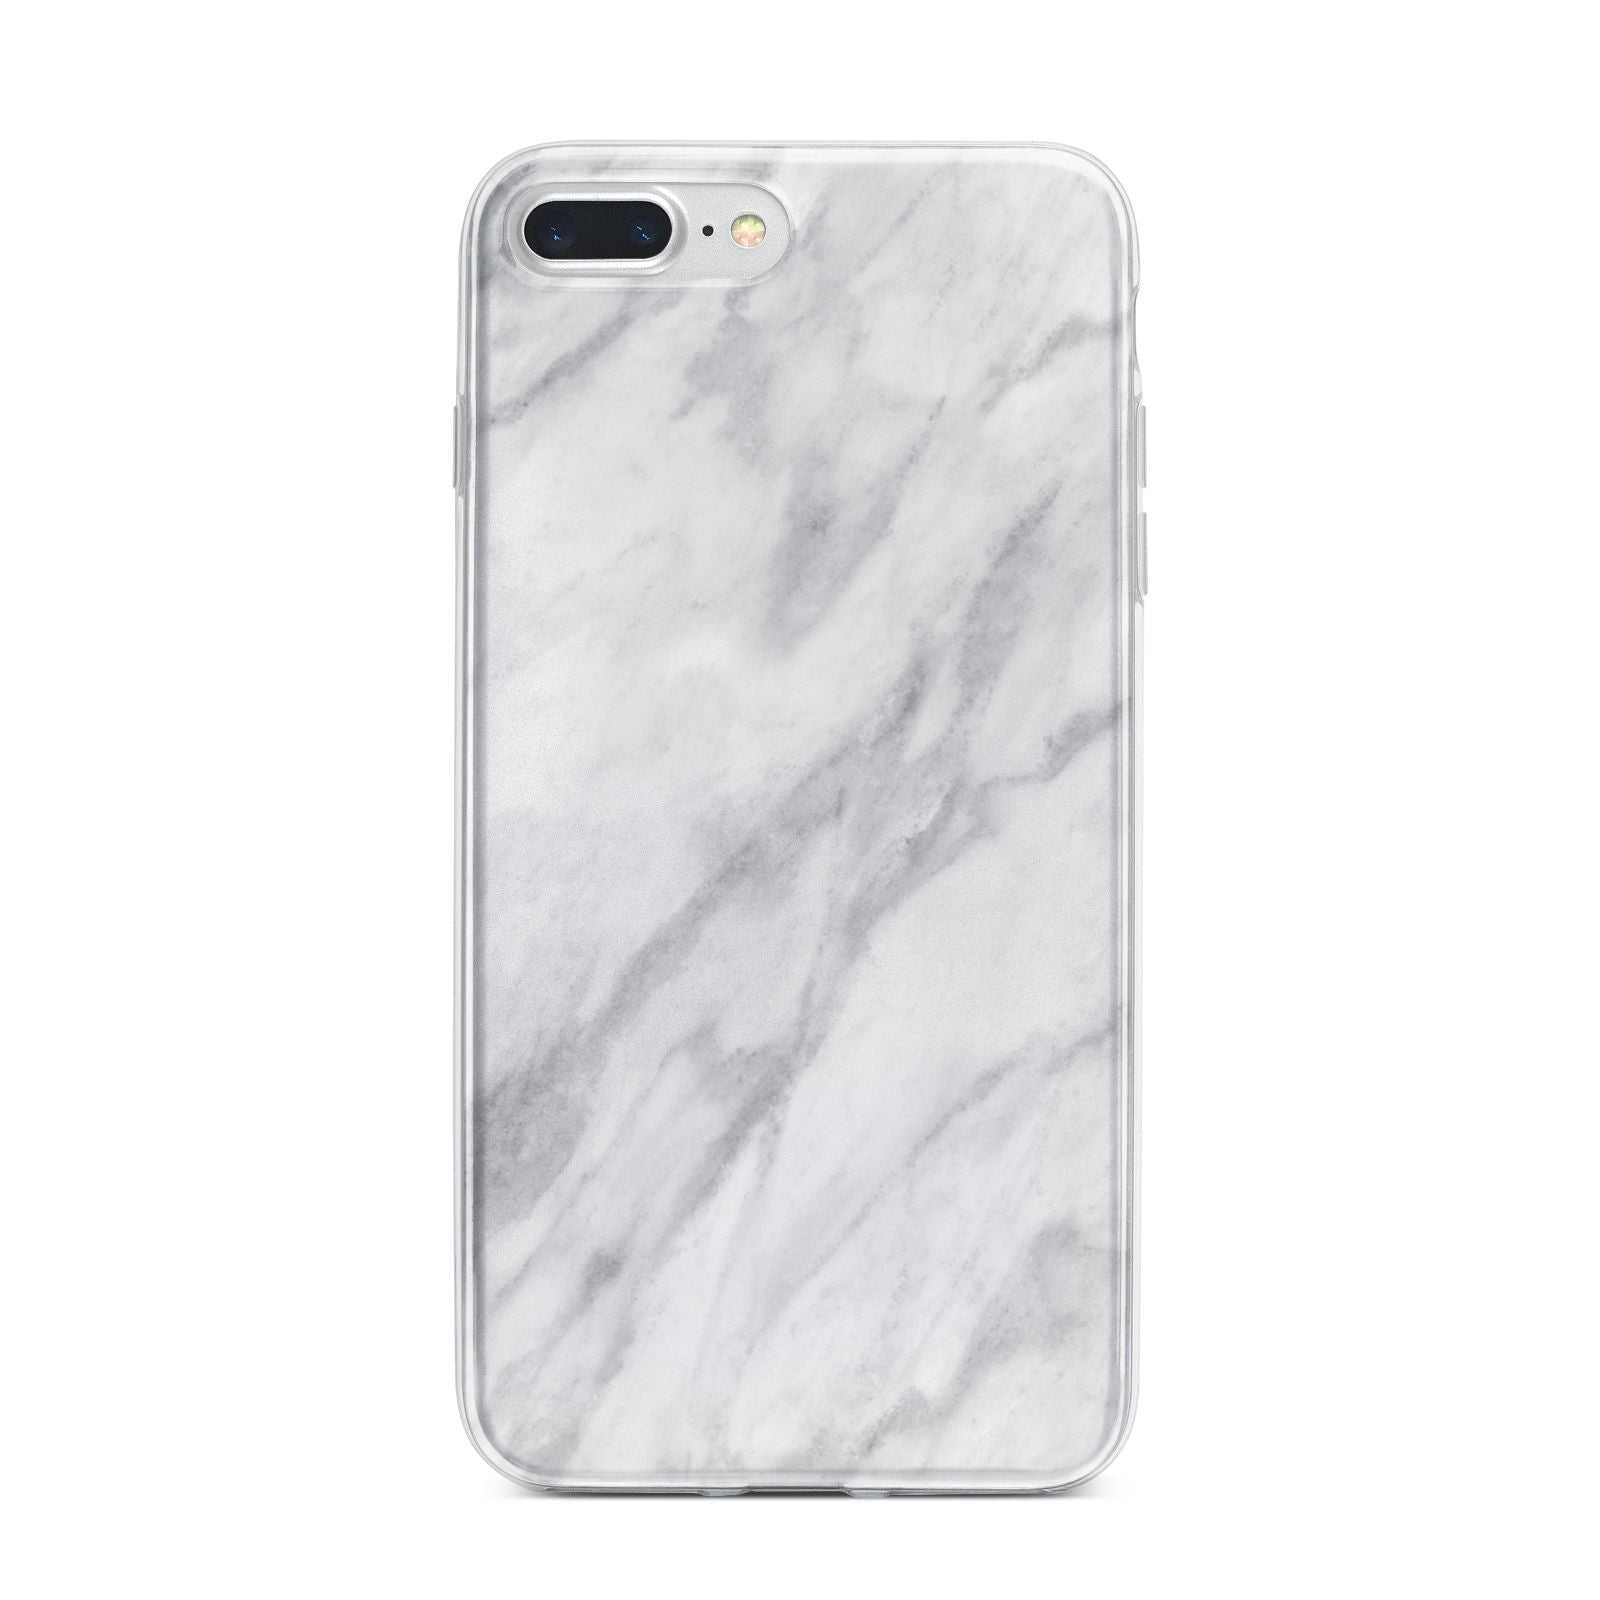 Faux Marble Effect Italian iPhone 7 Plus Bumper Case on Silver iPhone